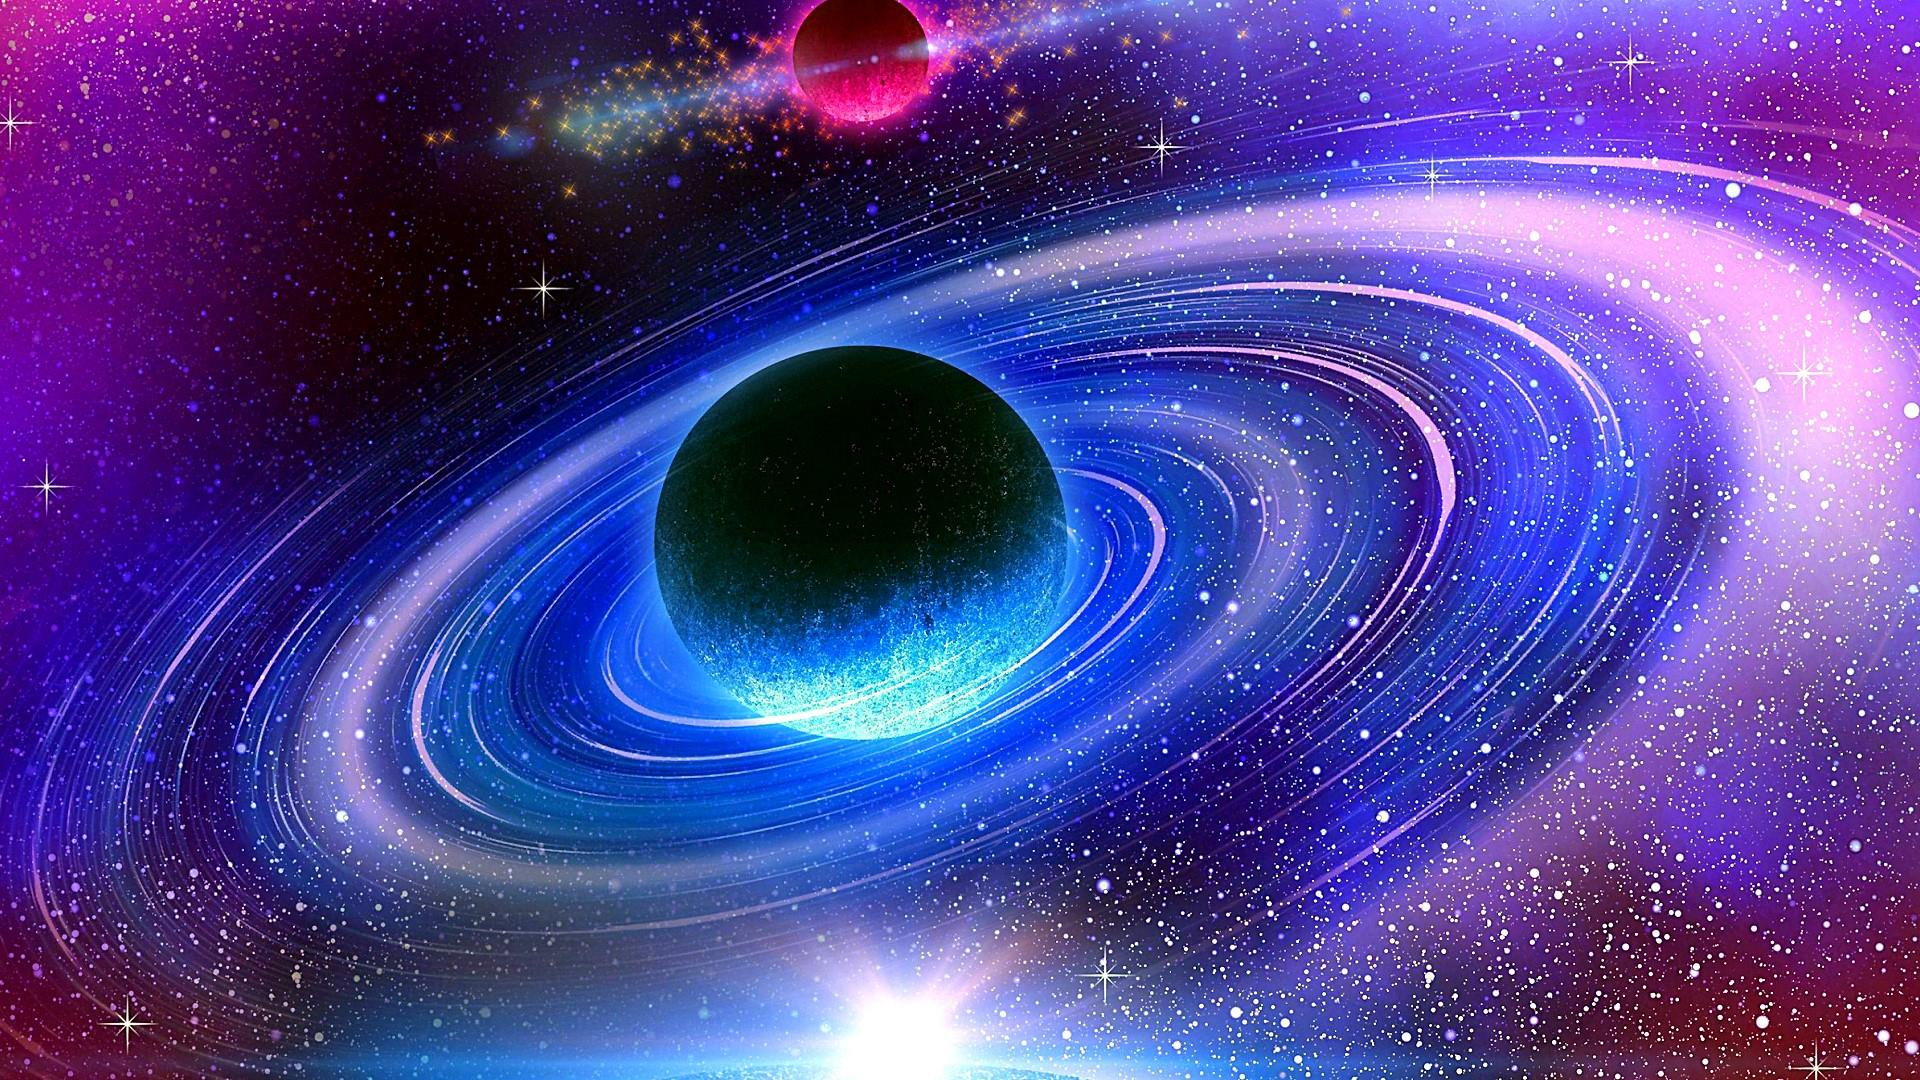 Wallpaper Of Planet, Space, Star, Galaxy Background - Planet - HD Wallpaper